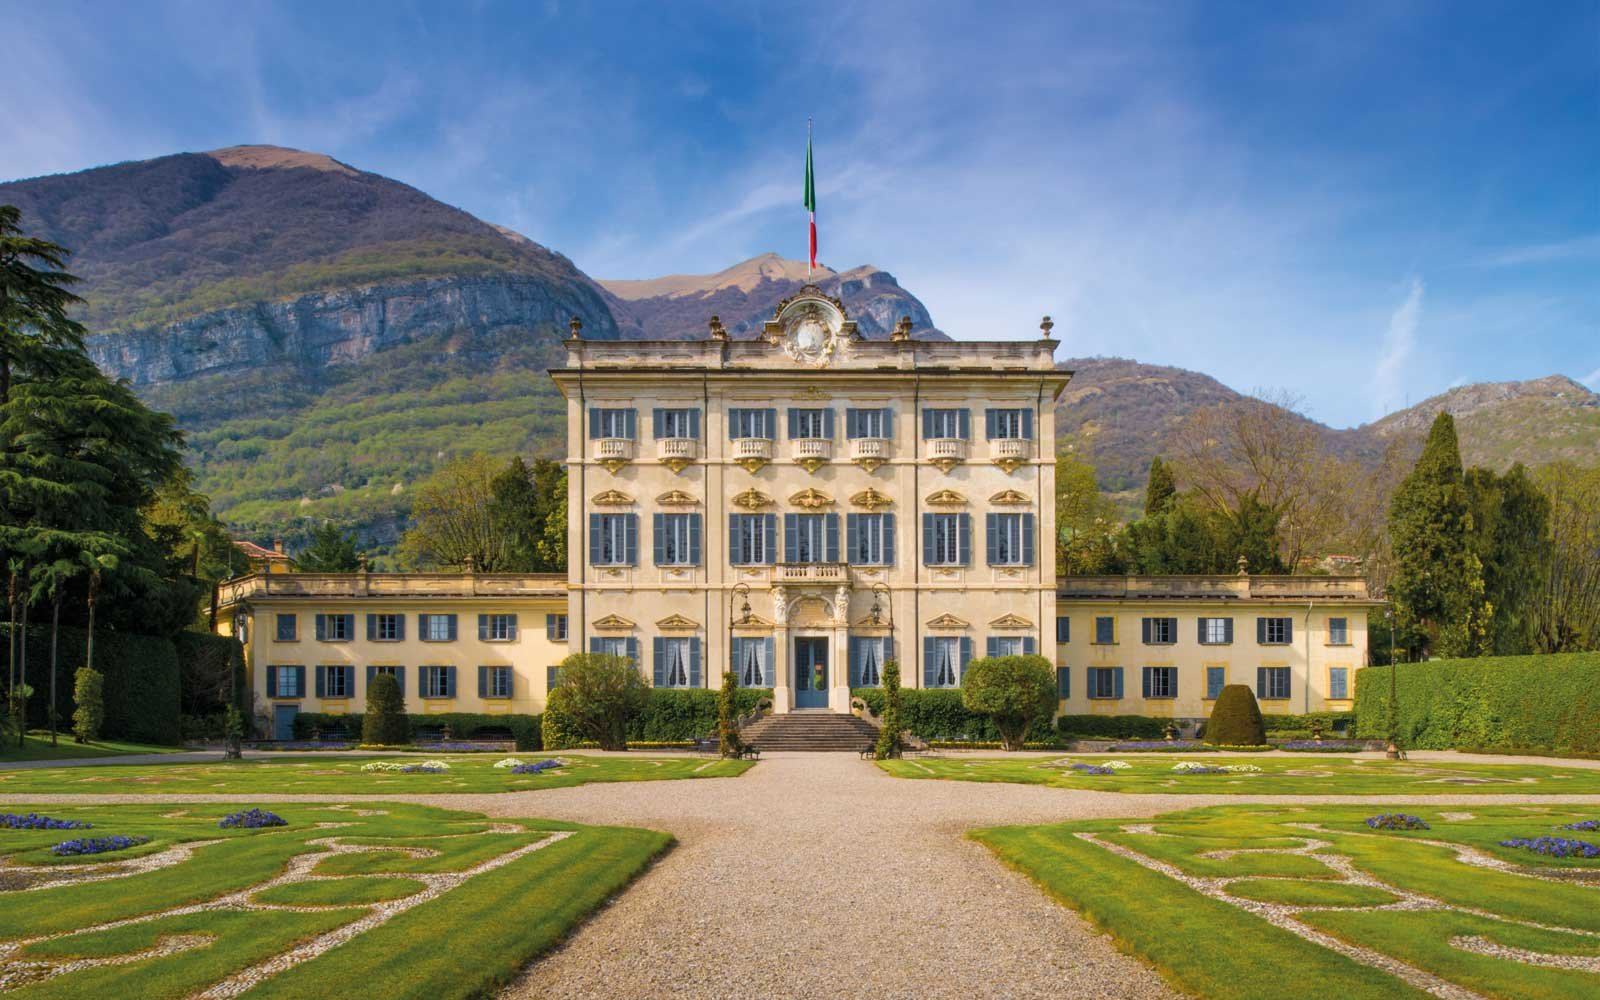 Entrance to Villa Sola Cabiati, on Lake Como